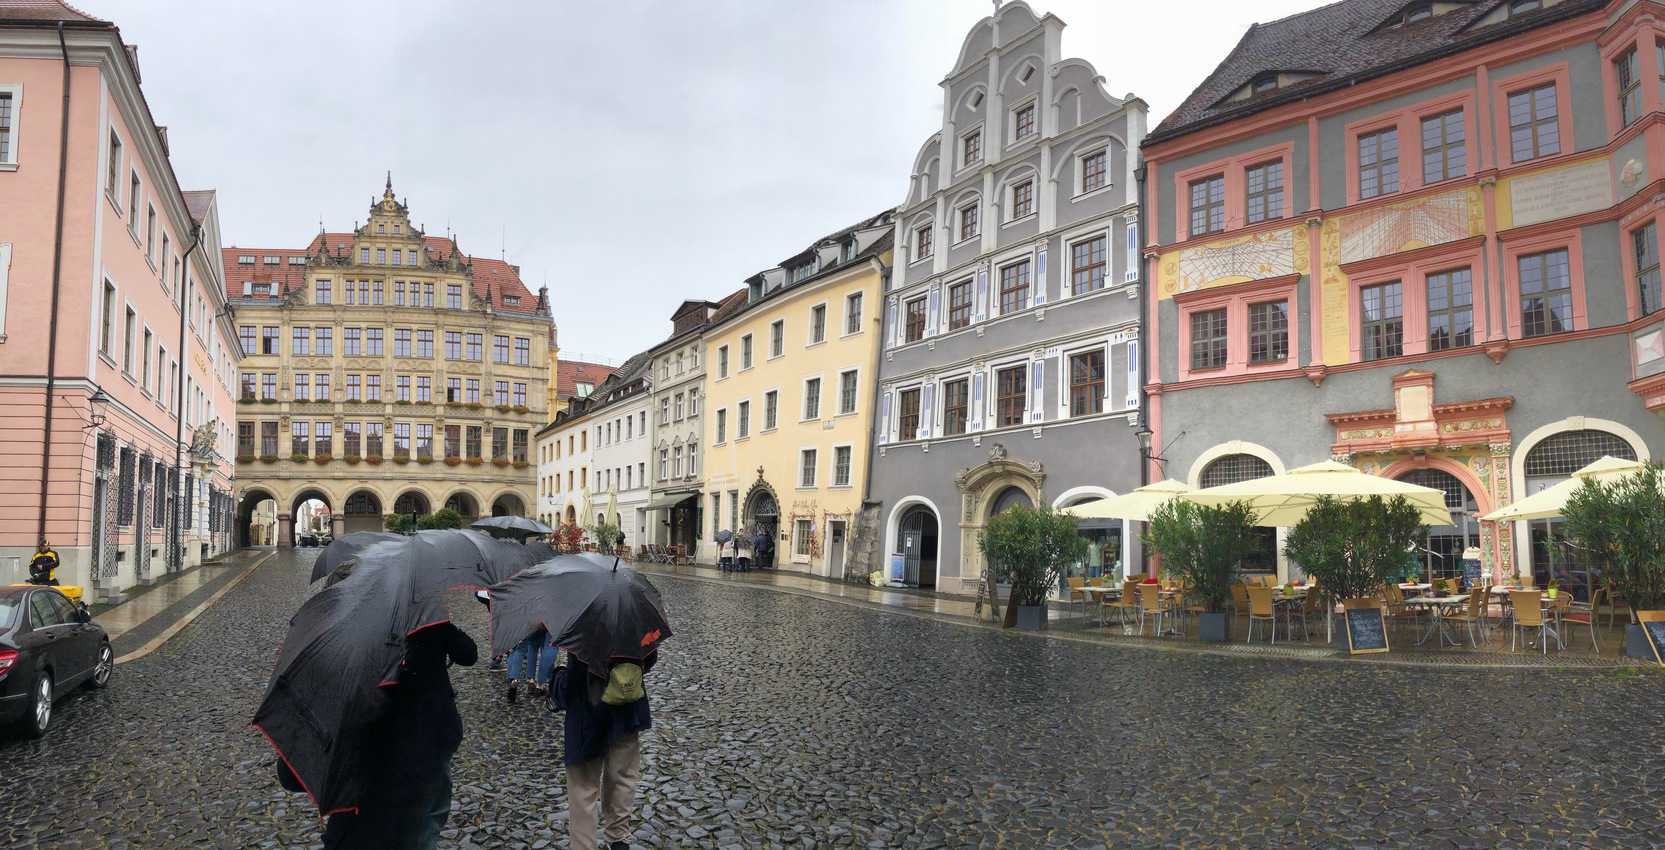 It's hard to find a better example of a perfectly preserved city than Gorlitz. Max Hartshorne photos.